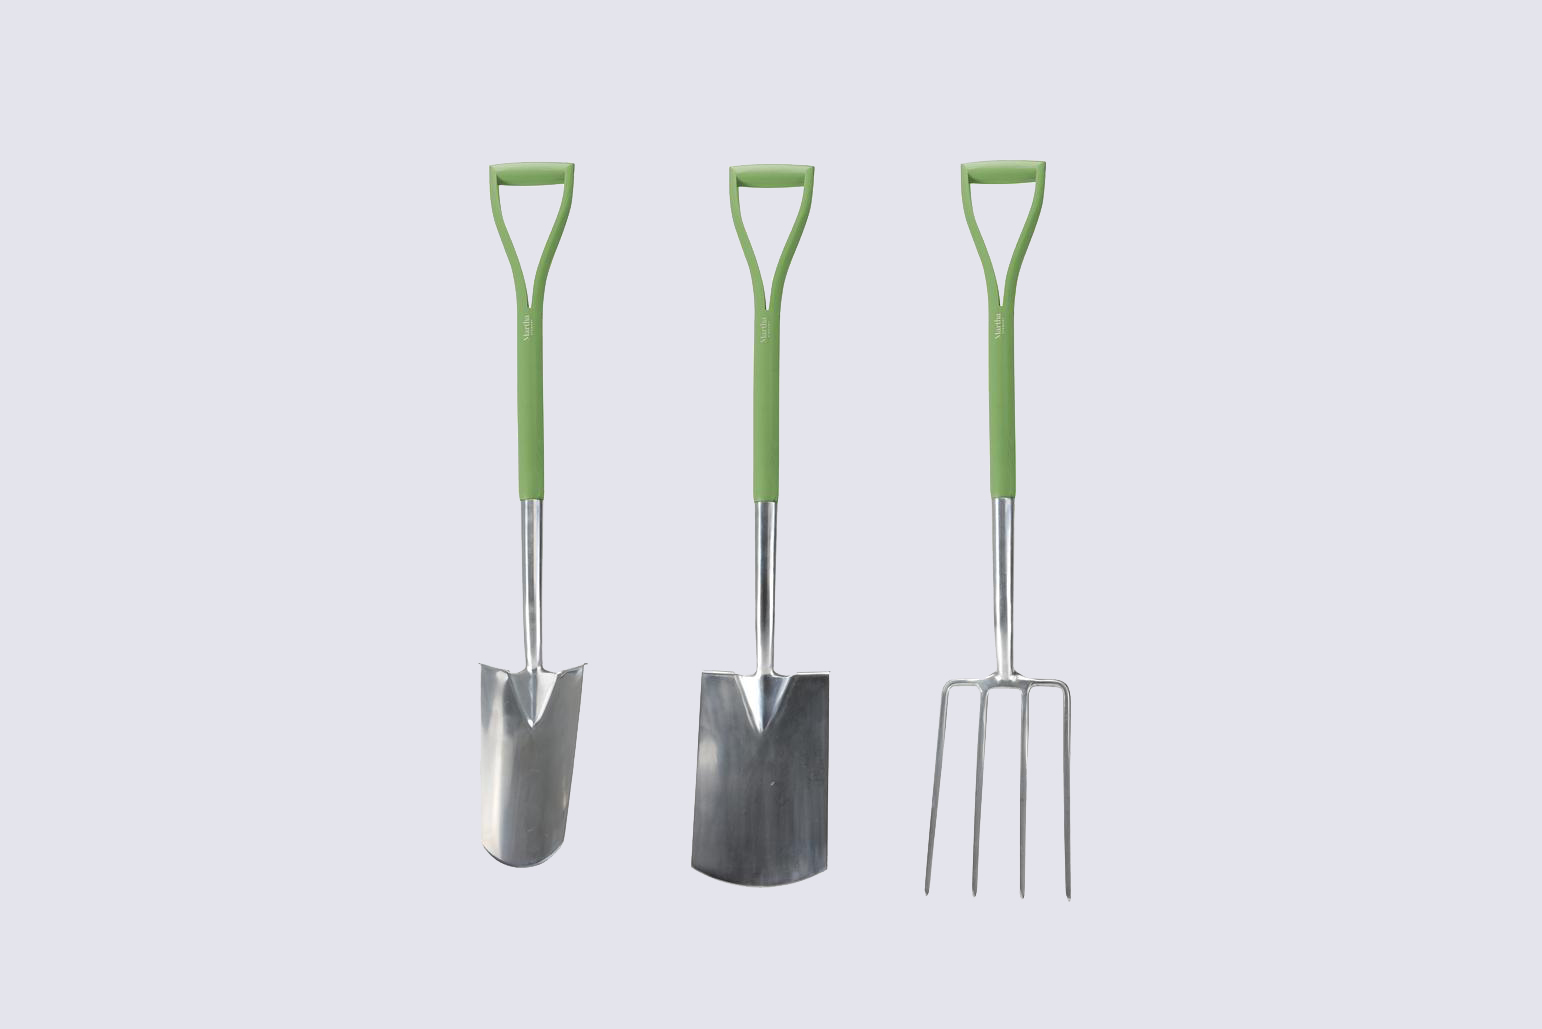 Martha Stewart Three-Piece Stainless Steel Gardening Tool Set